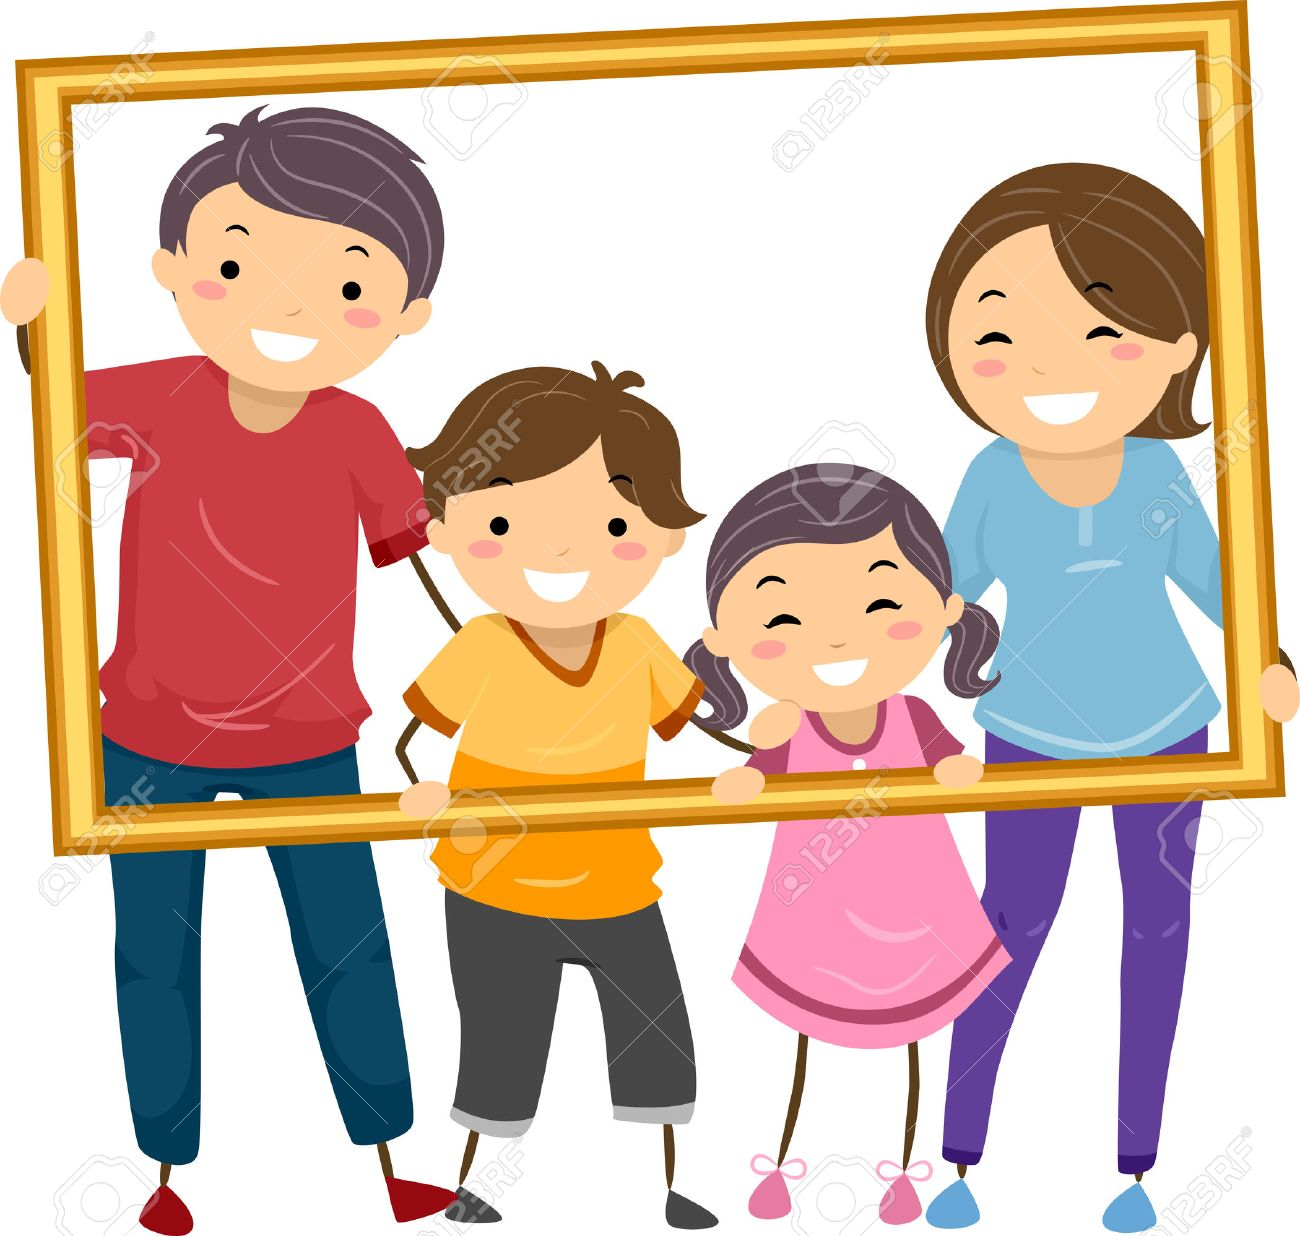 Illustration Featuring a Happy Family Holding a Hollow Frame.